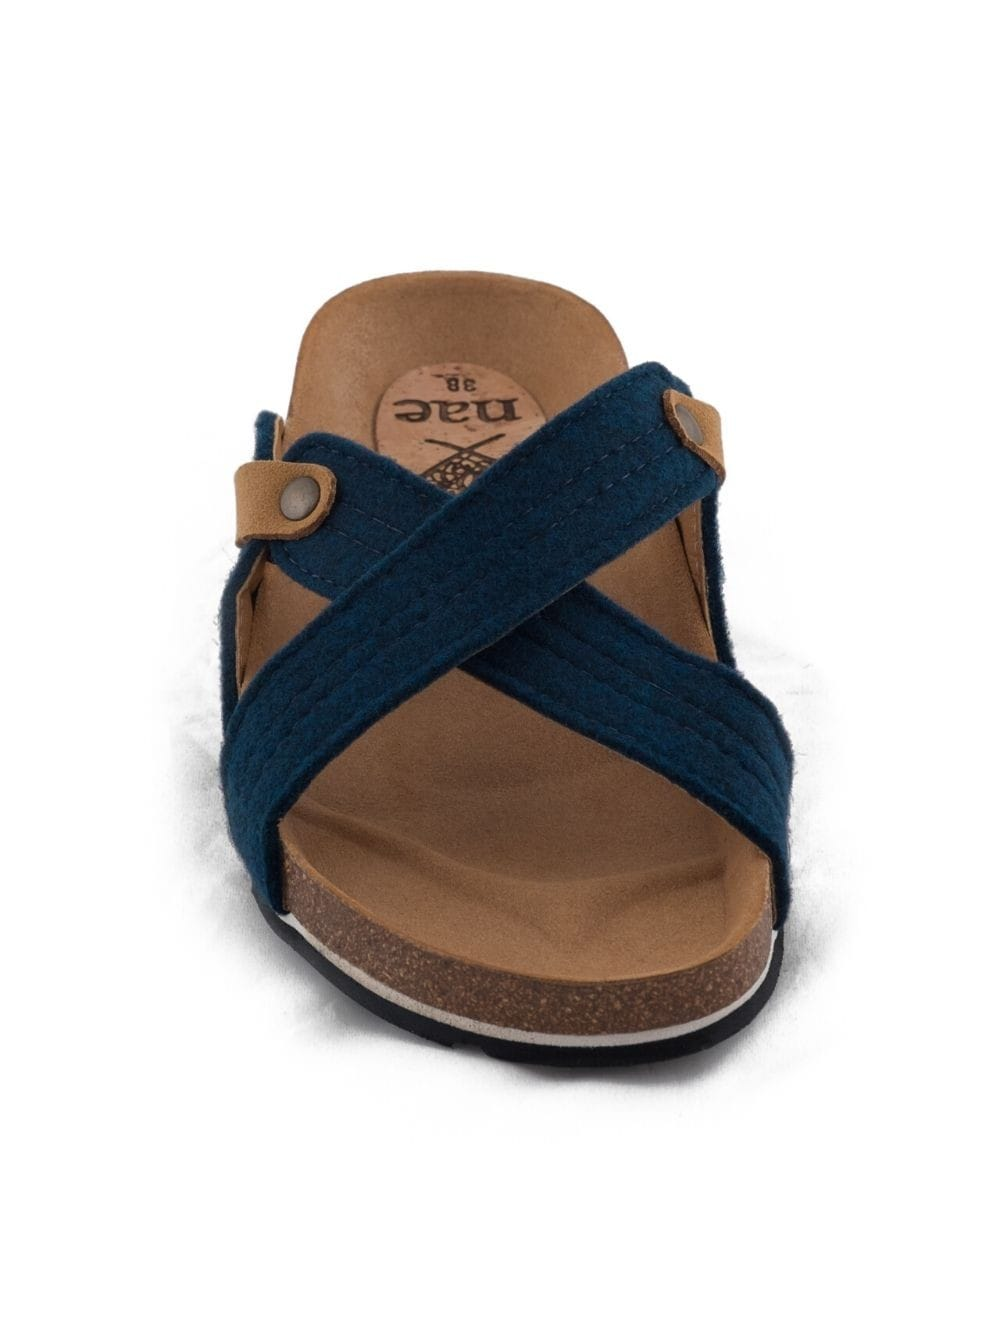 Flat sandal made from recycled bottles-Paxos